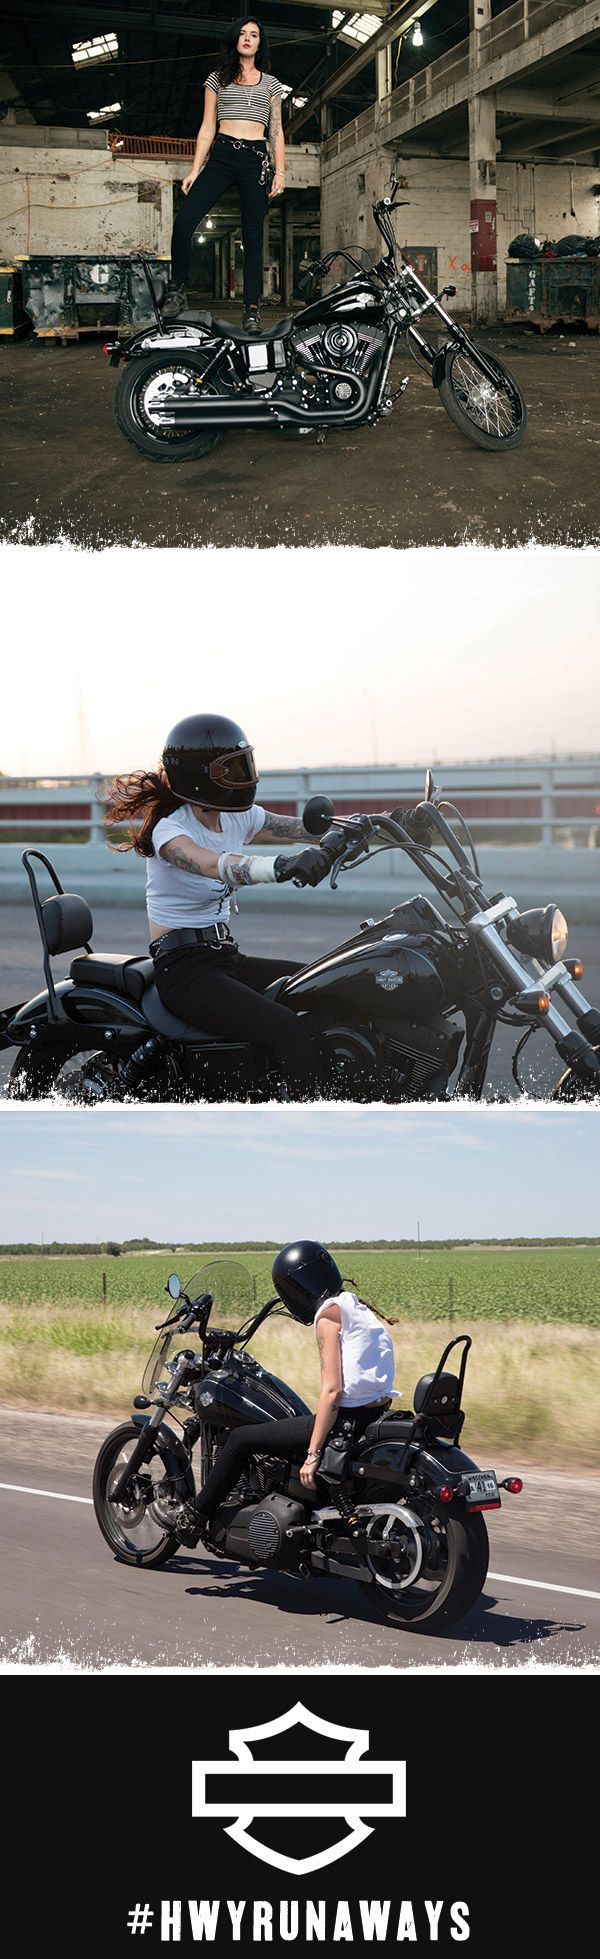 """Imogen Lehtonen - """"I know this is something I had to do, this journey is healing me. I just feel so grateful to have such strong and loving souls with me on this trip who've been so supportive when the going gets tough. Life is a trip.""""  #HwyRunaways 